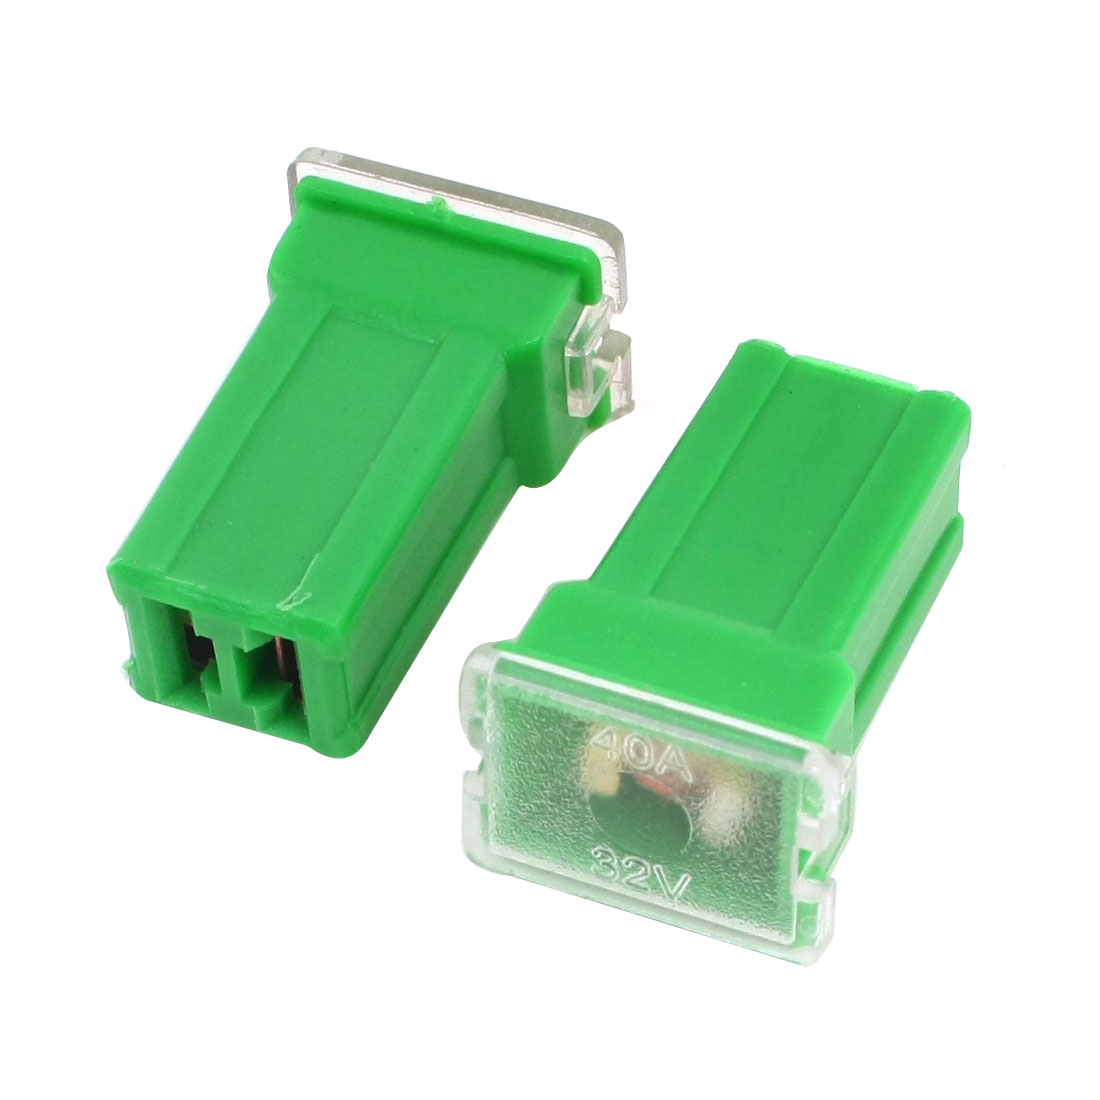 2Pcs 2 Terminals Car Vehicle Automotive Female Plug Type Cartridge PAL Fuse Green DC 32V 40A